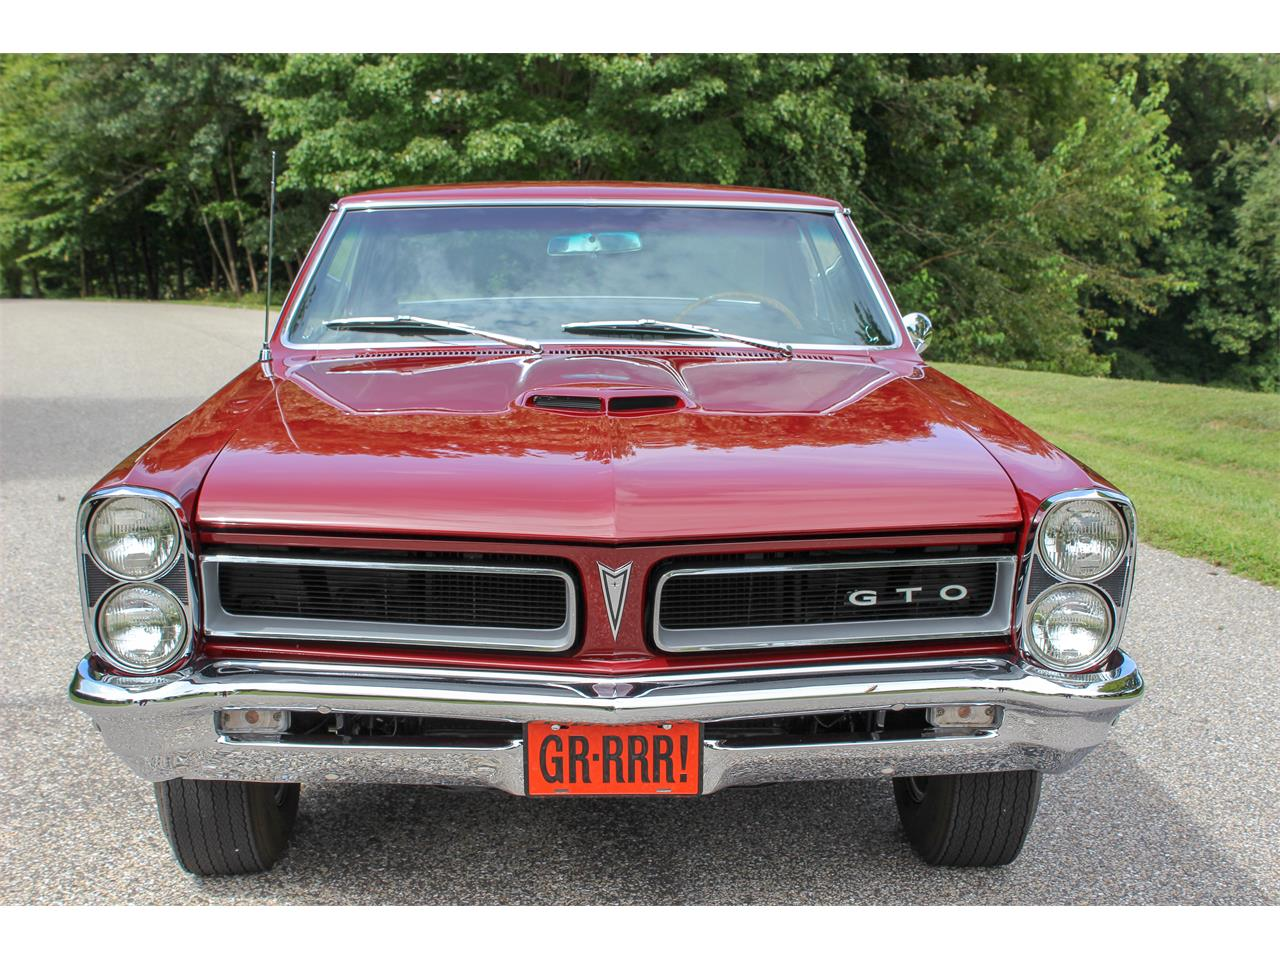 Large Picture of Classic '65 GTO located in Maryland - $68,000.00 - R2KD